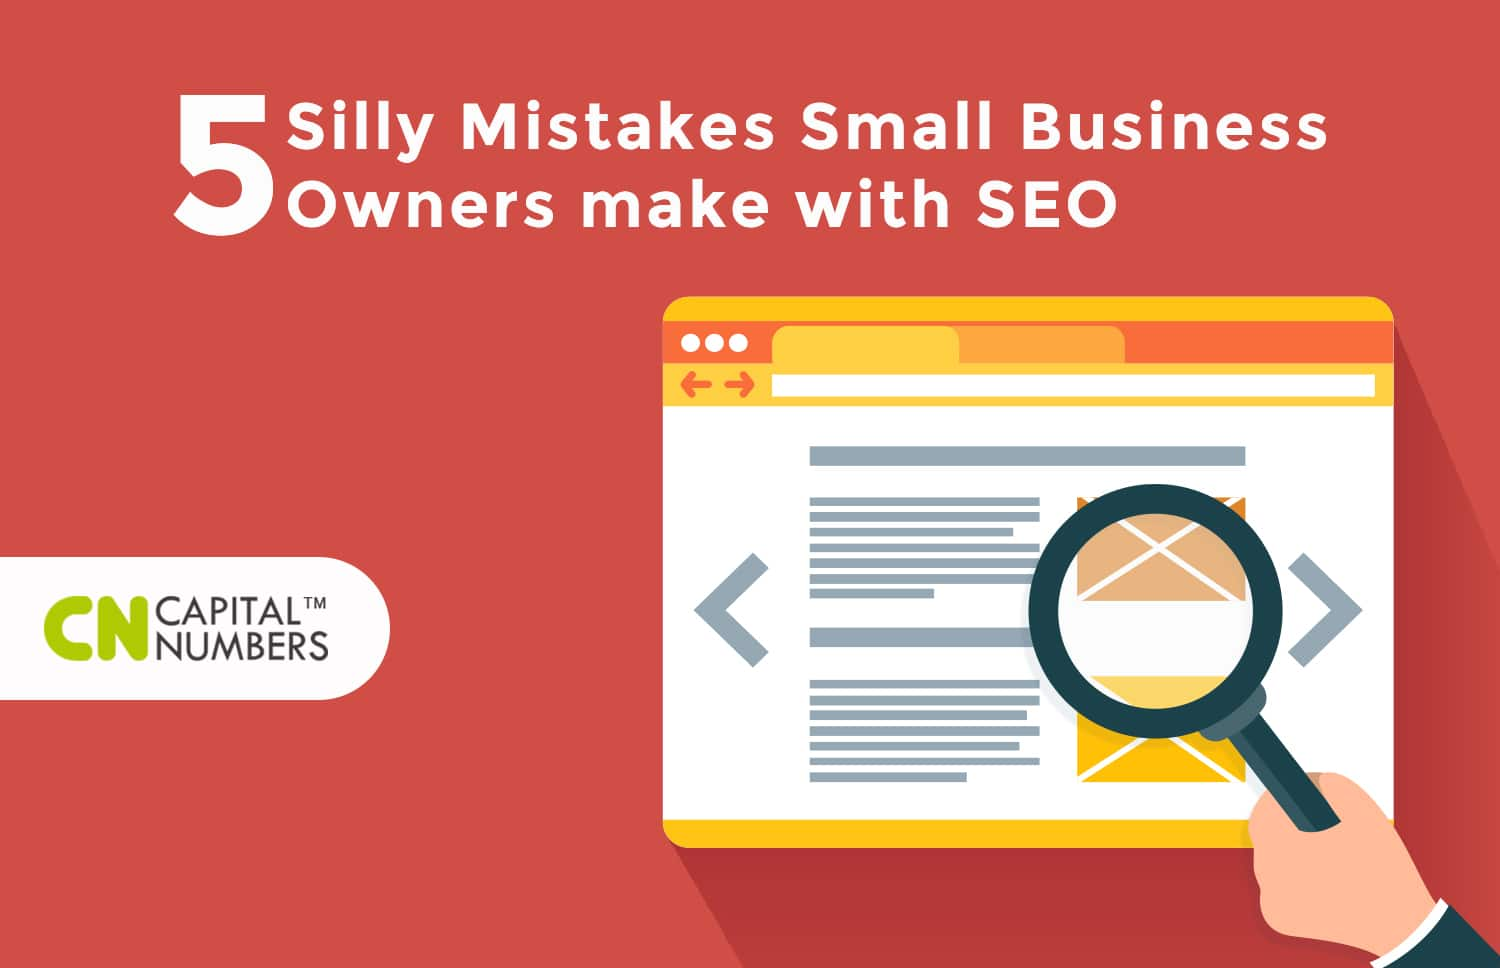 5 Silly Mistakes Small Business Owners make with SEO